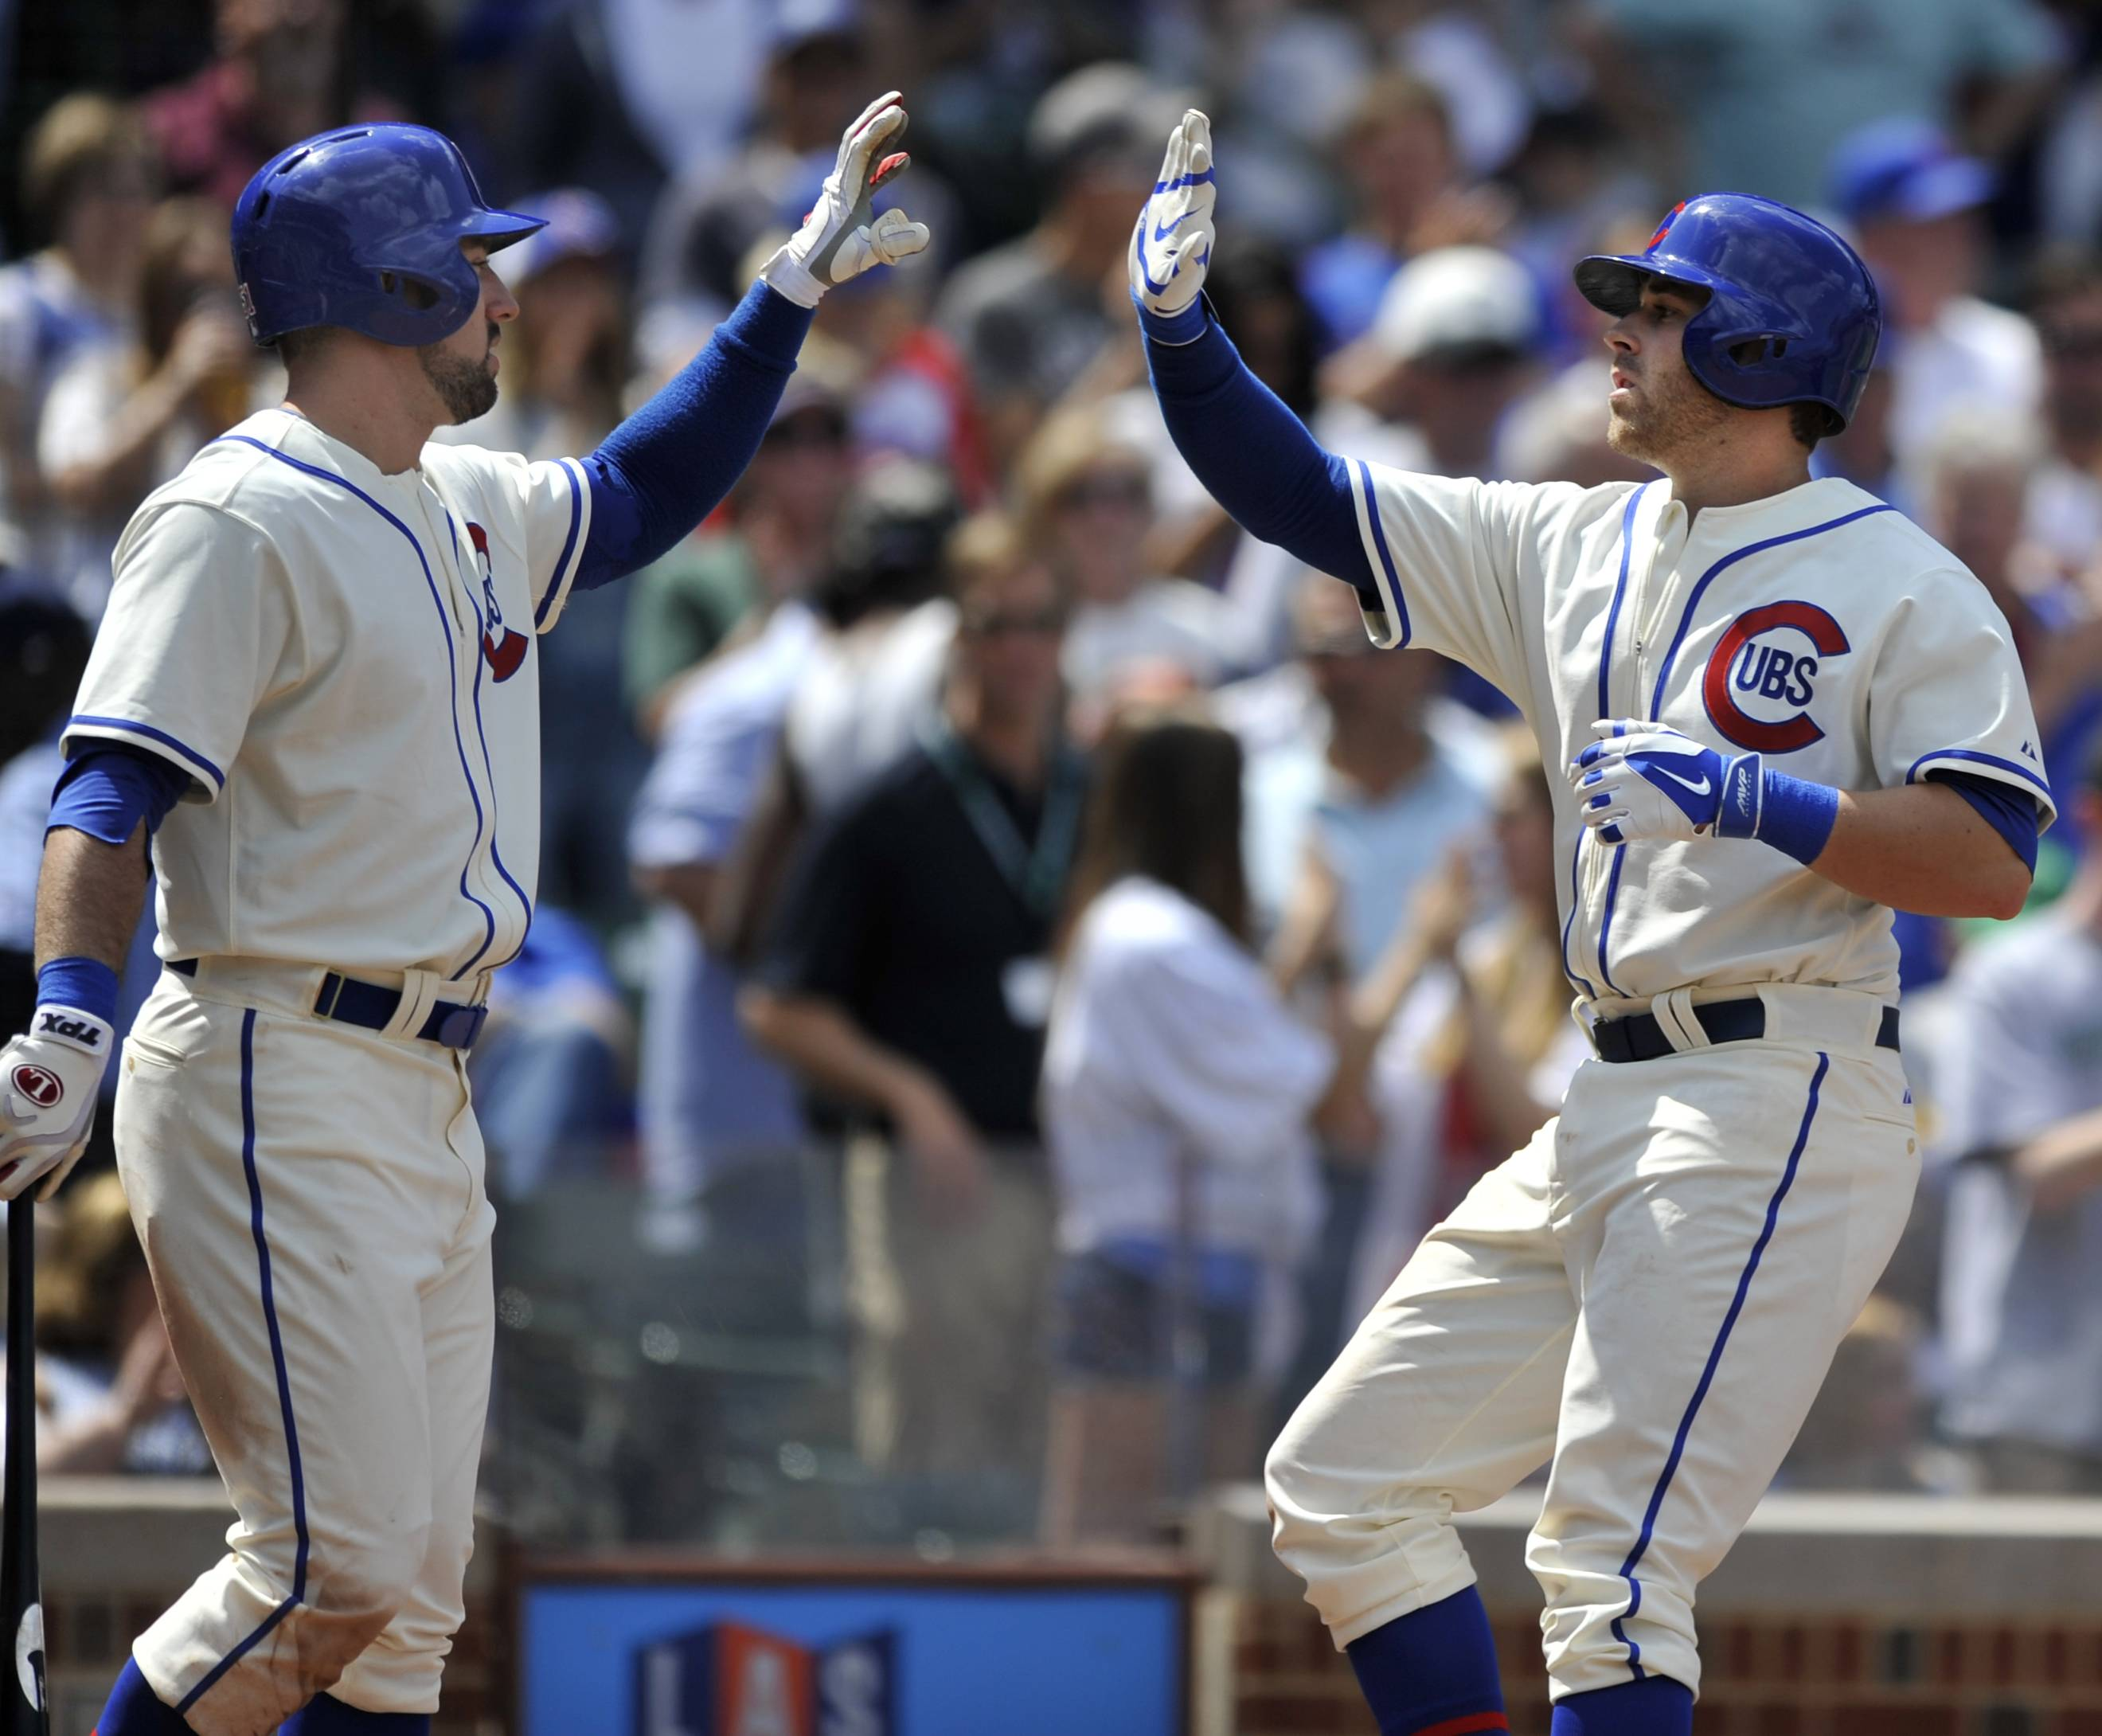 Cubs flex their muscles